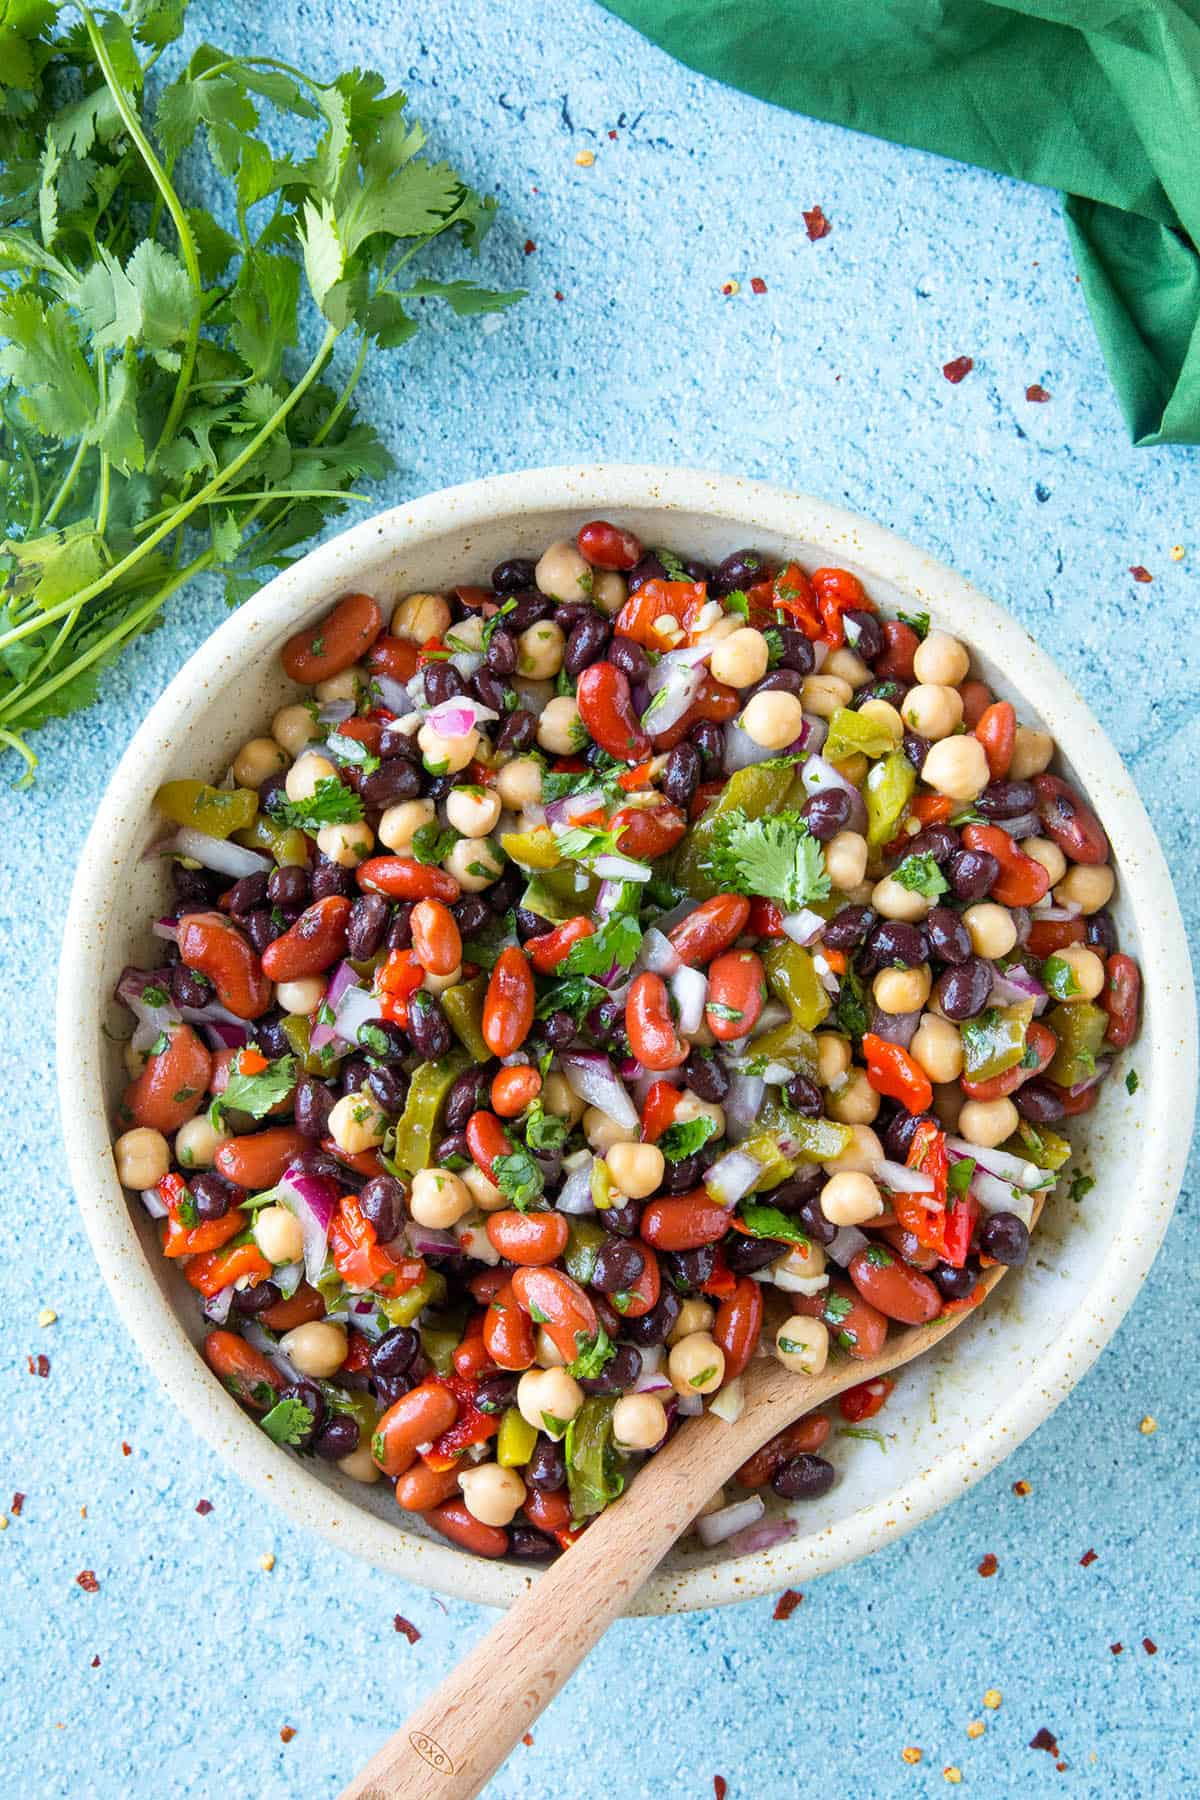 Mike's Zesty Three Bean Salad in a bowl, ready to serve